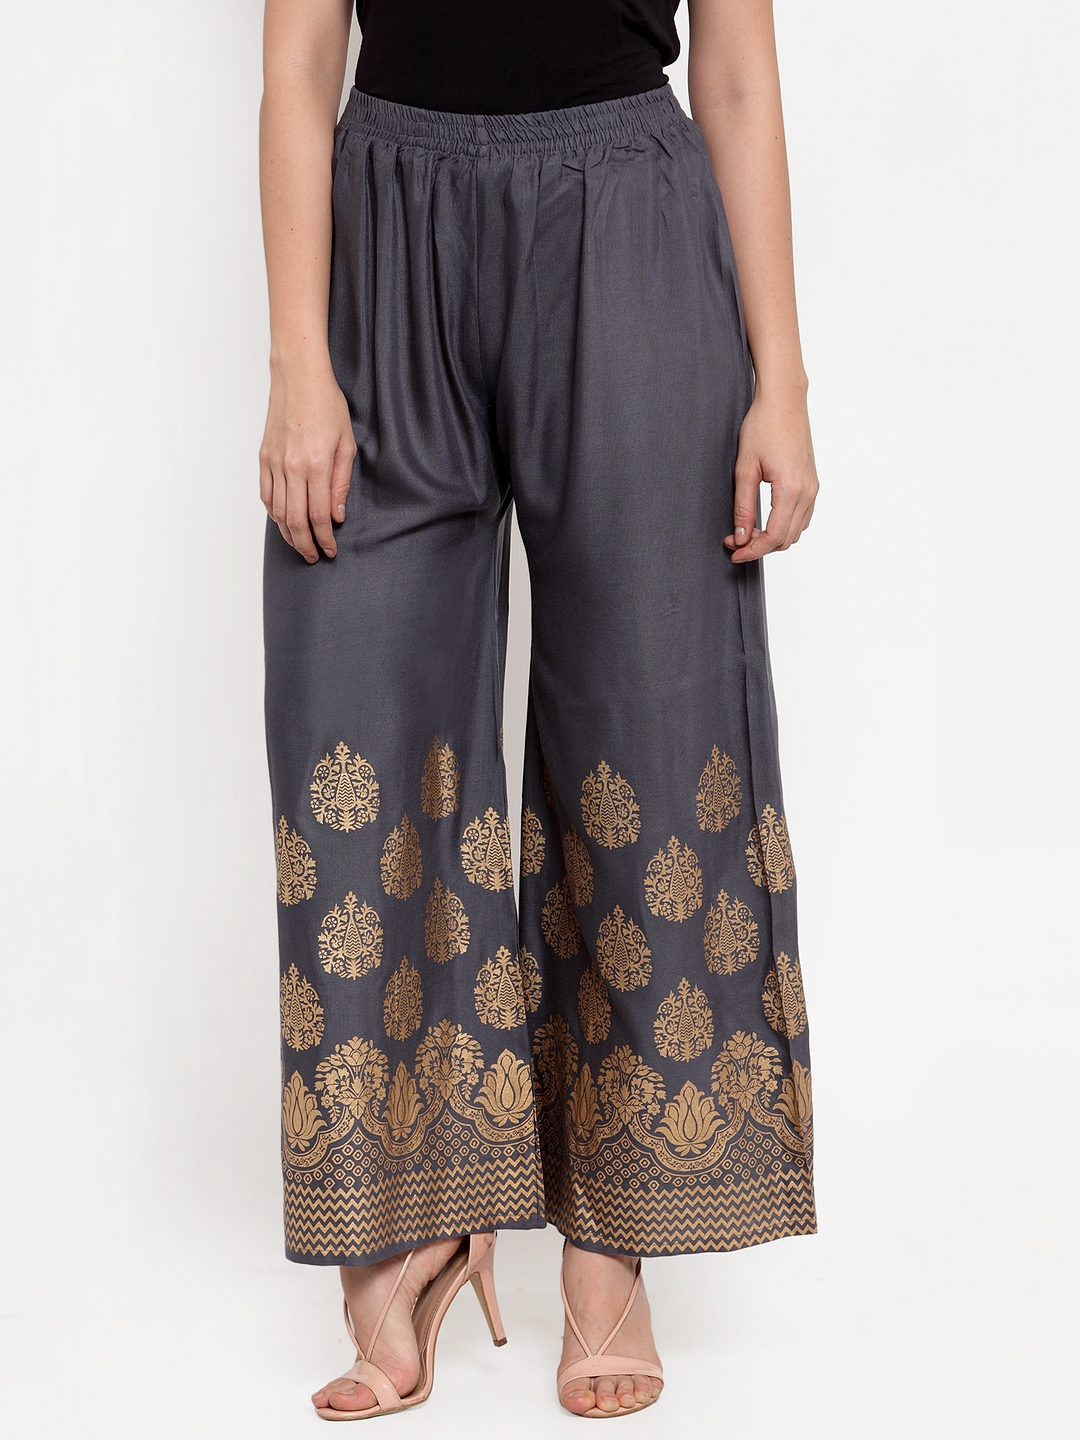 Jompers | Jompers Women Grey & Gold-Toned Printed Wide Leg Palazzos